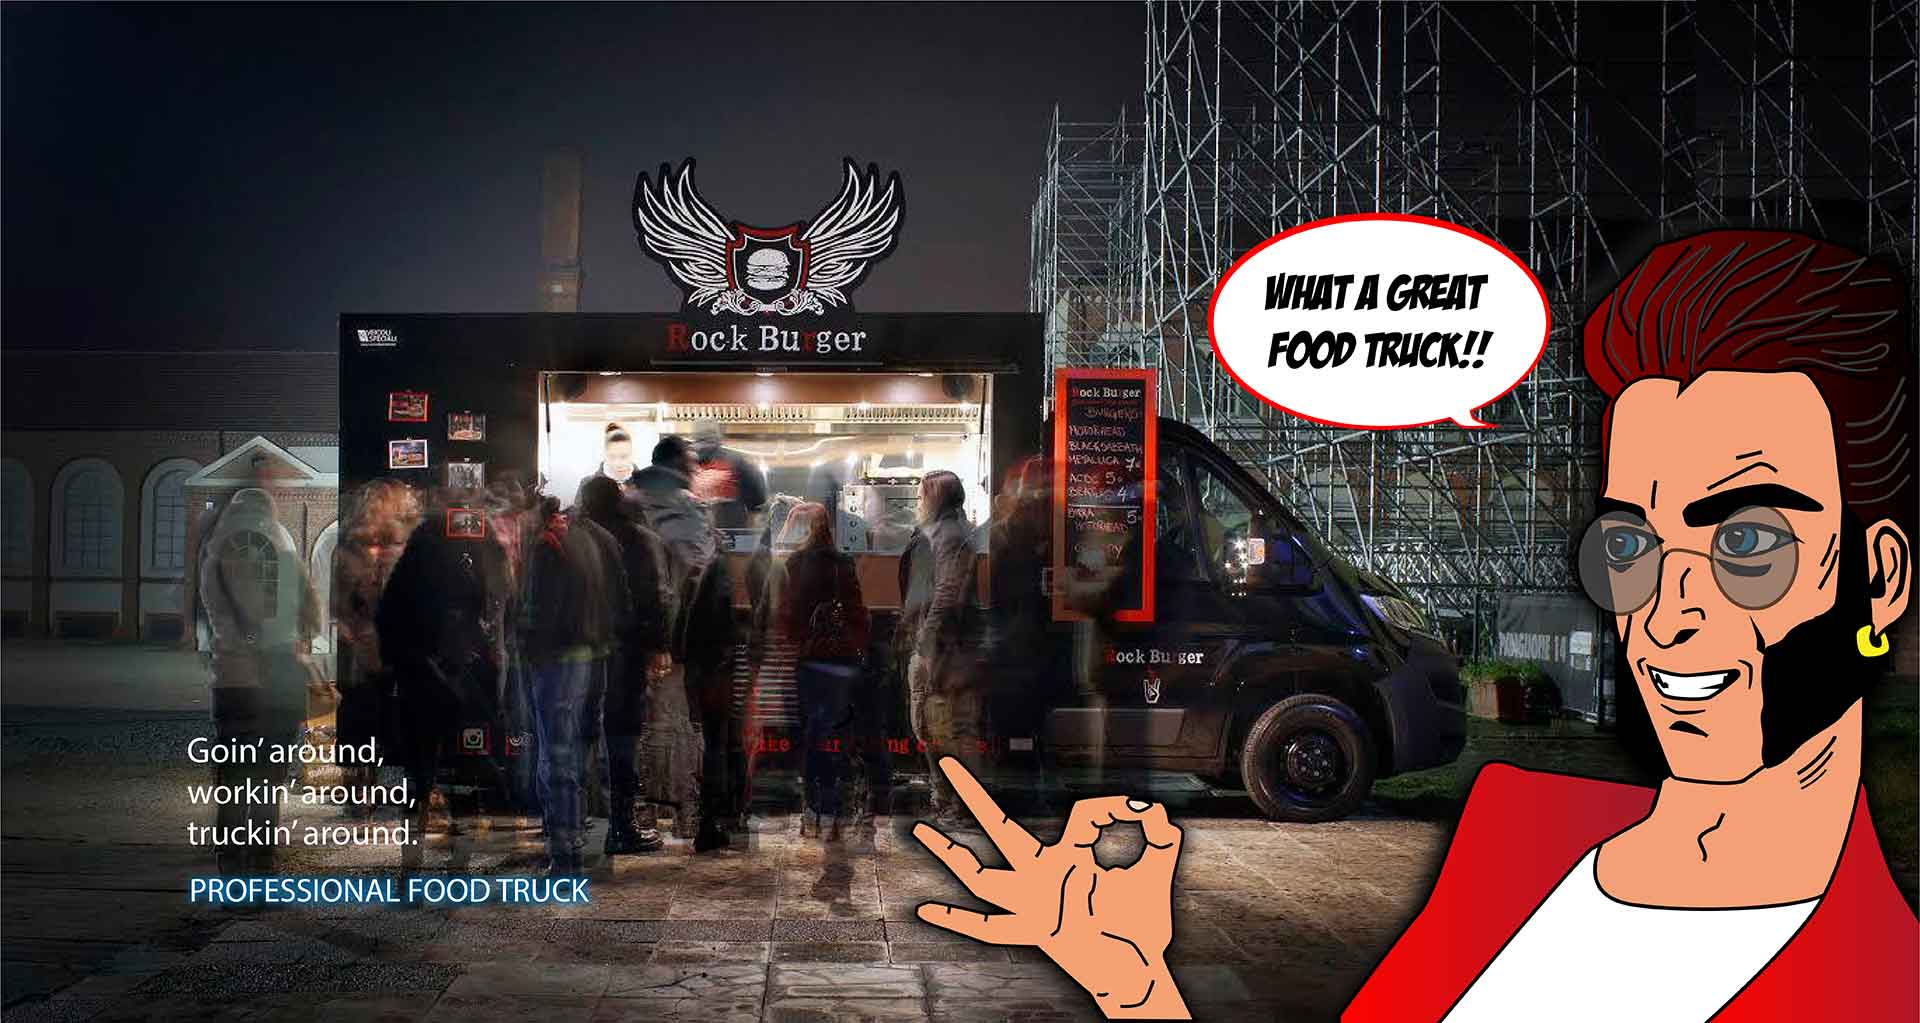 Professional Food Truck